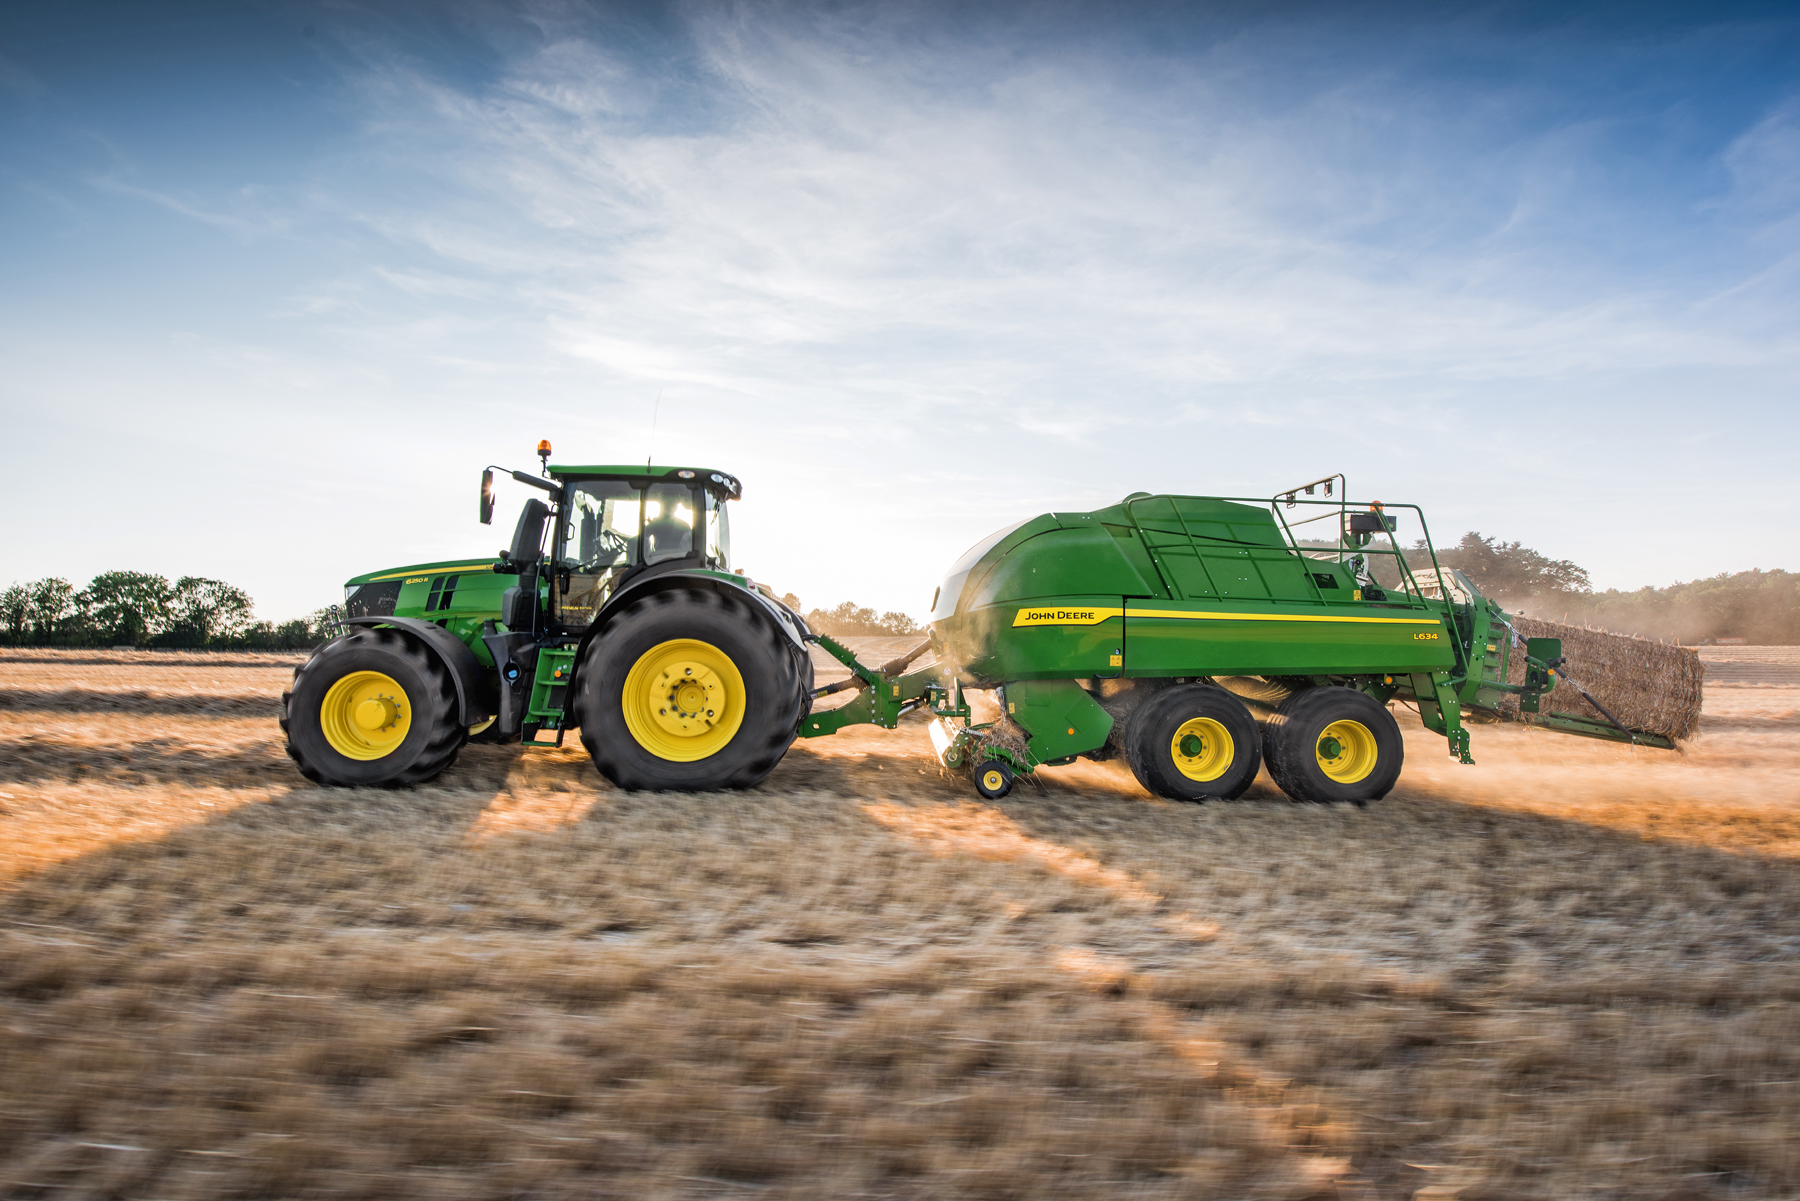 John Deere launches new large square balers